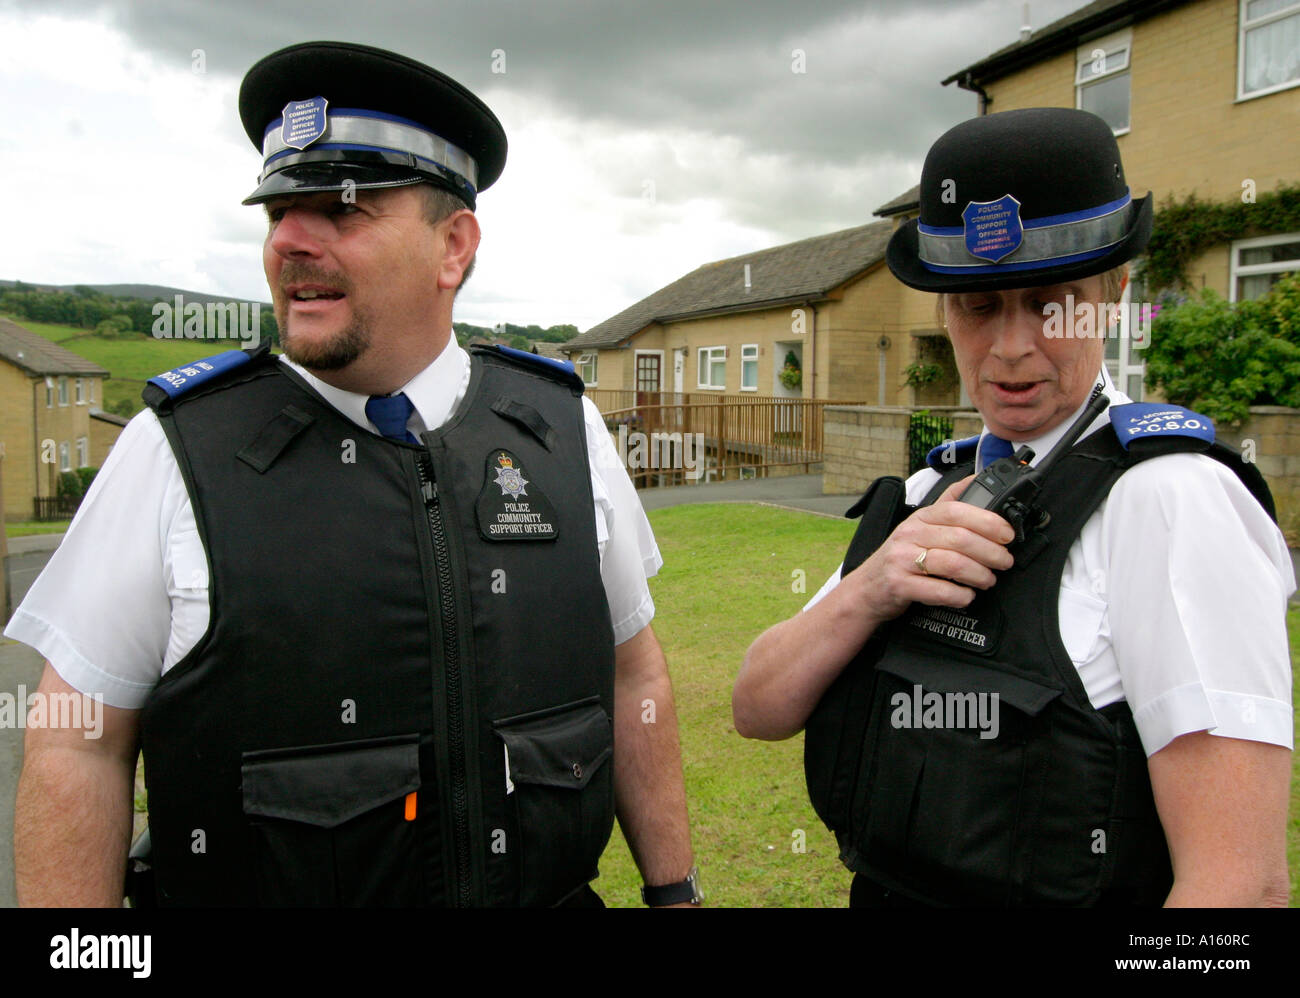 police foot patrol Corporations for preventative patrols have driven a proliferation of non-police foot patrol schemes in publicly accessible areas, sponsored by local authorities, commercial organisations and neighbourhood collectives, demonstrating that this tactic of policing cannot.